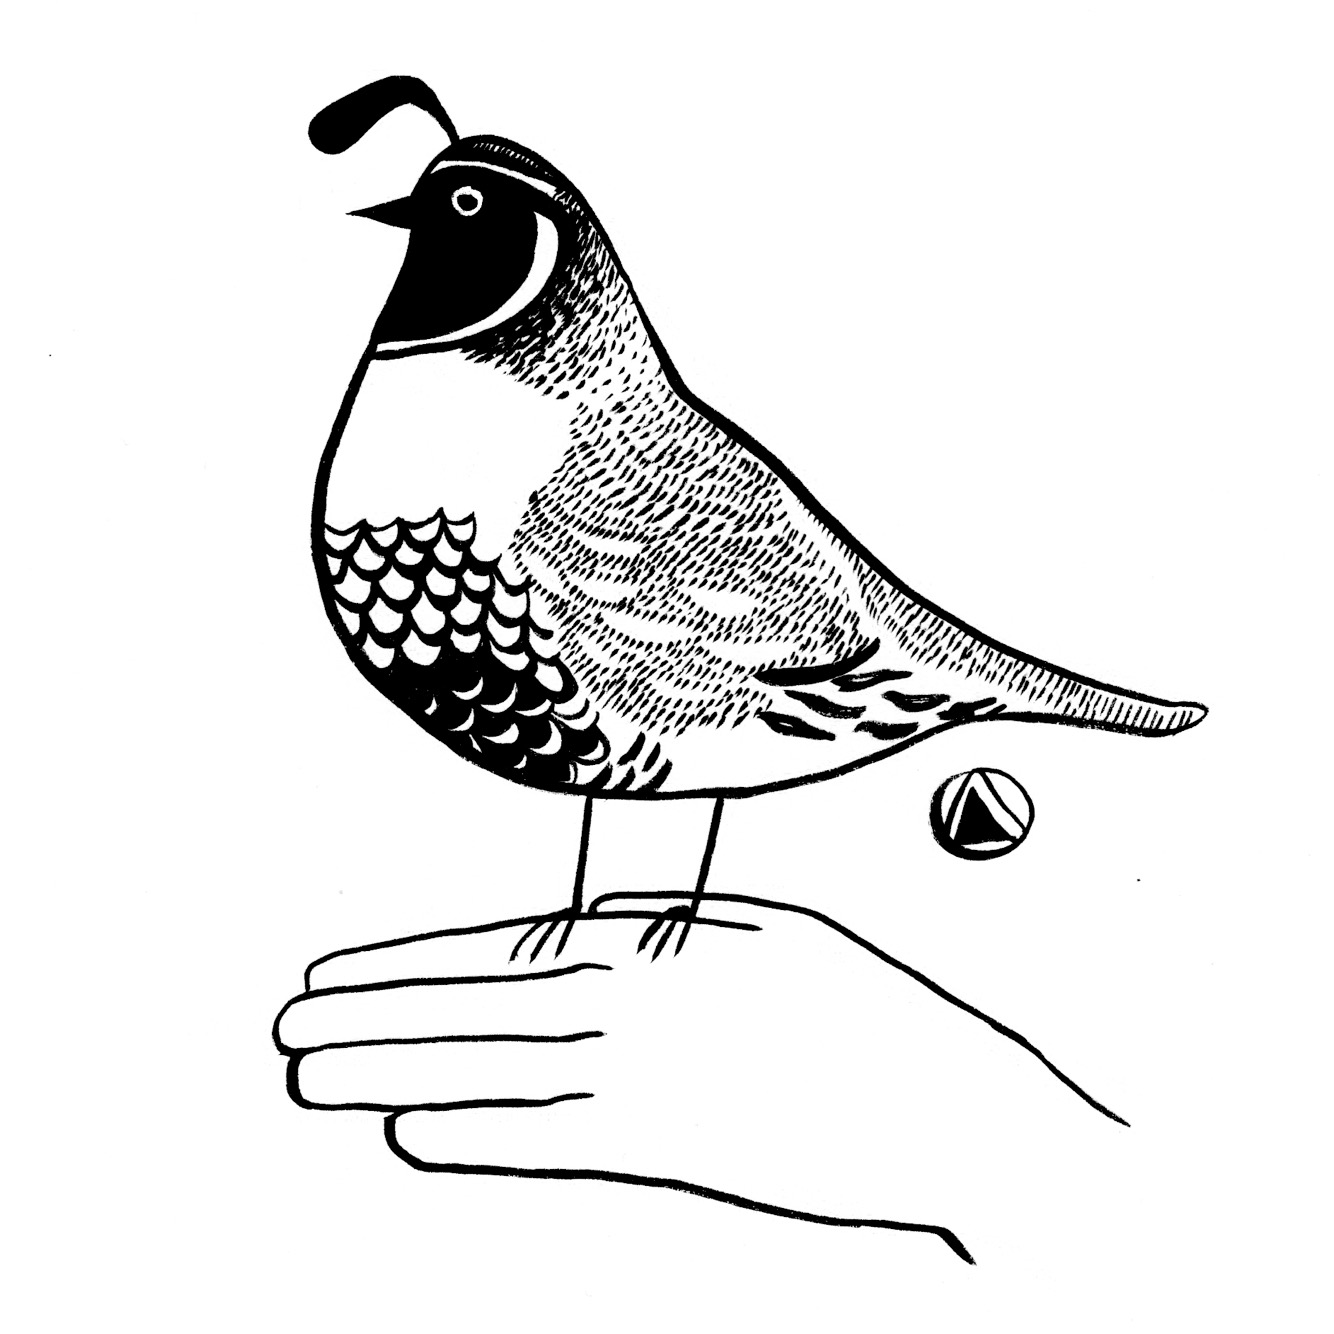 California Quail Drawing at GetDrawings.com | Free for personal use ...